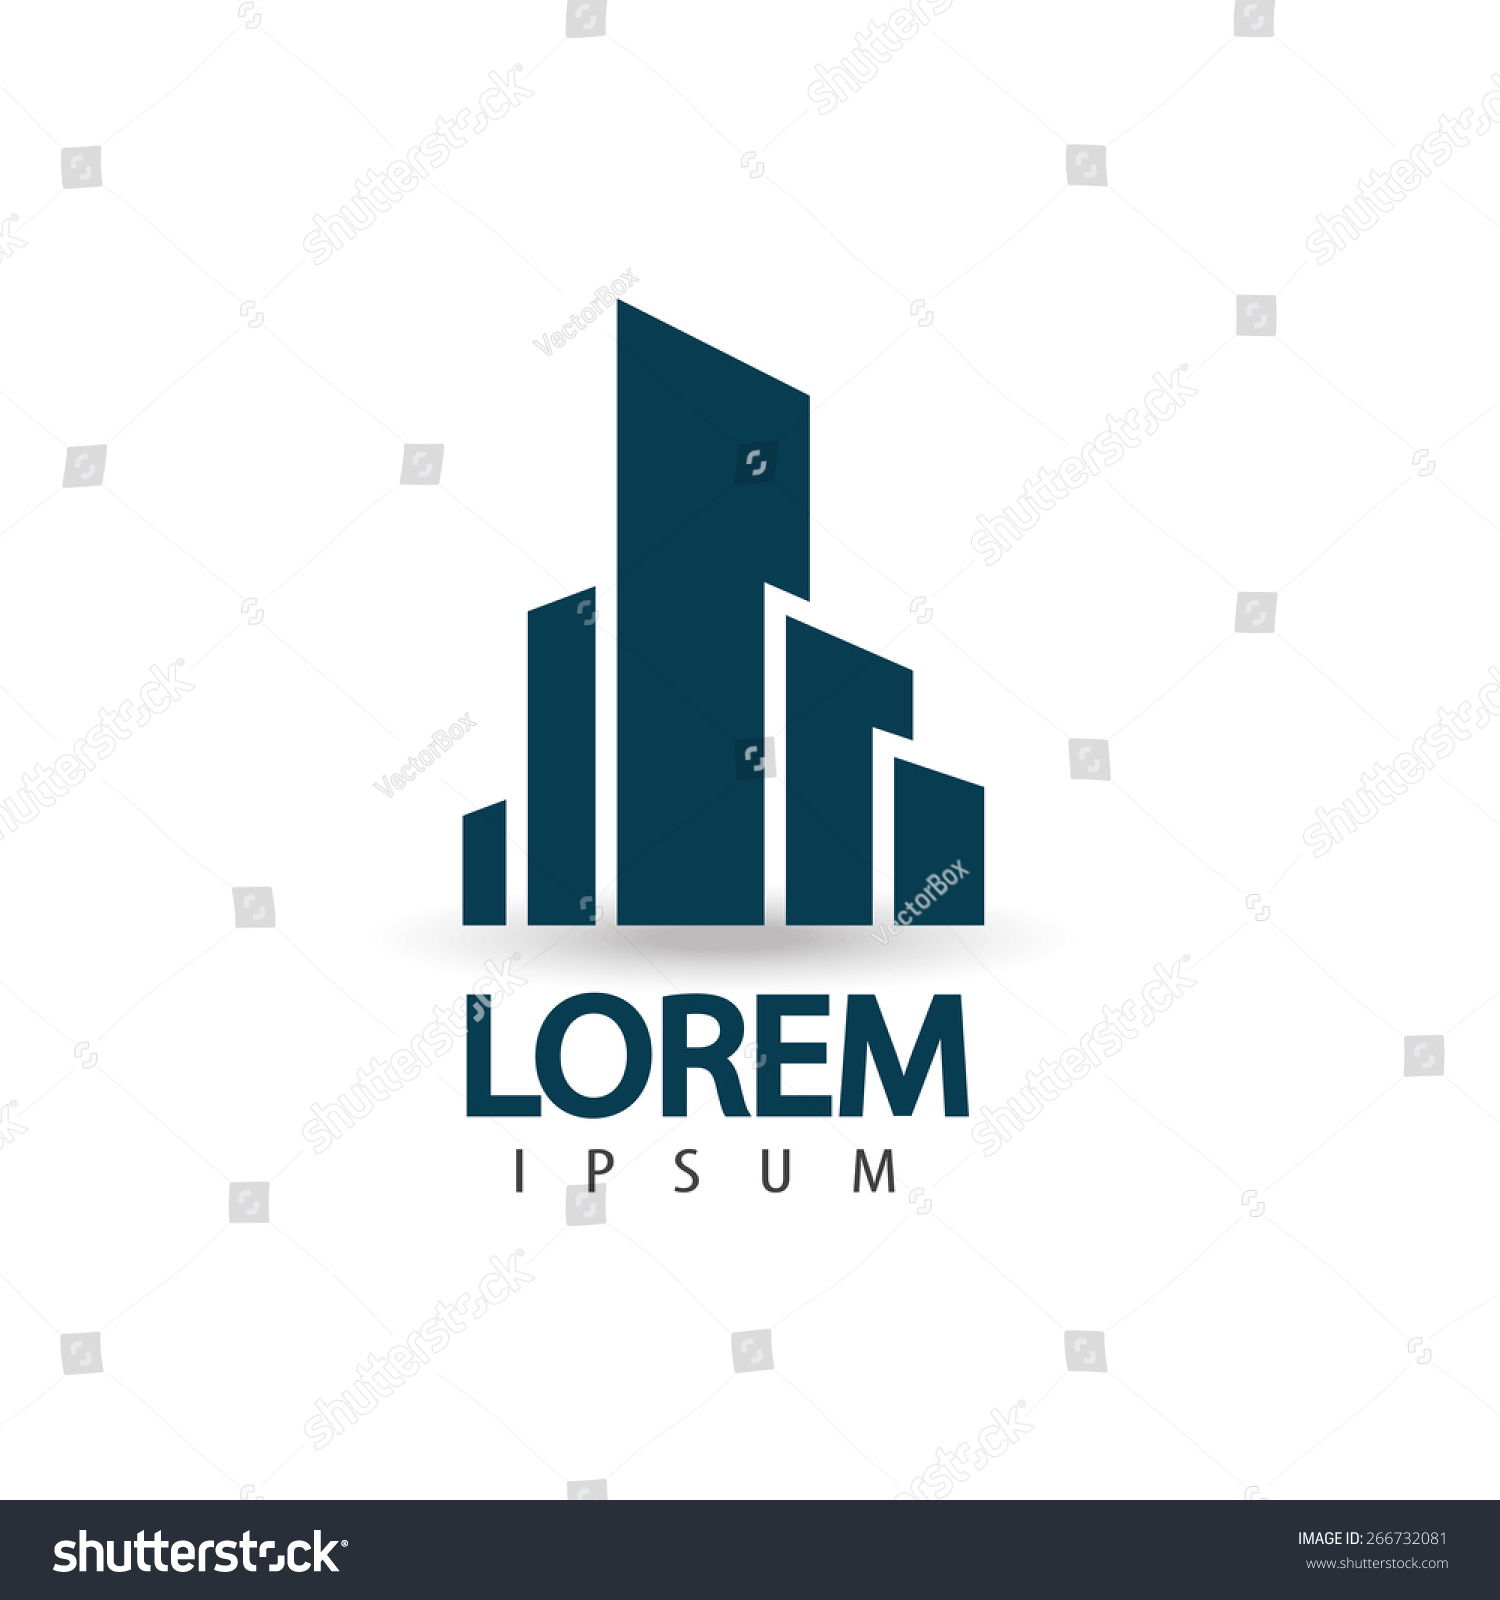 Creative architecture logo design trendy business stock for Architecture and design company